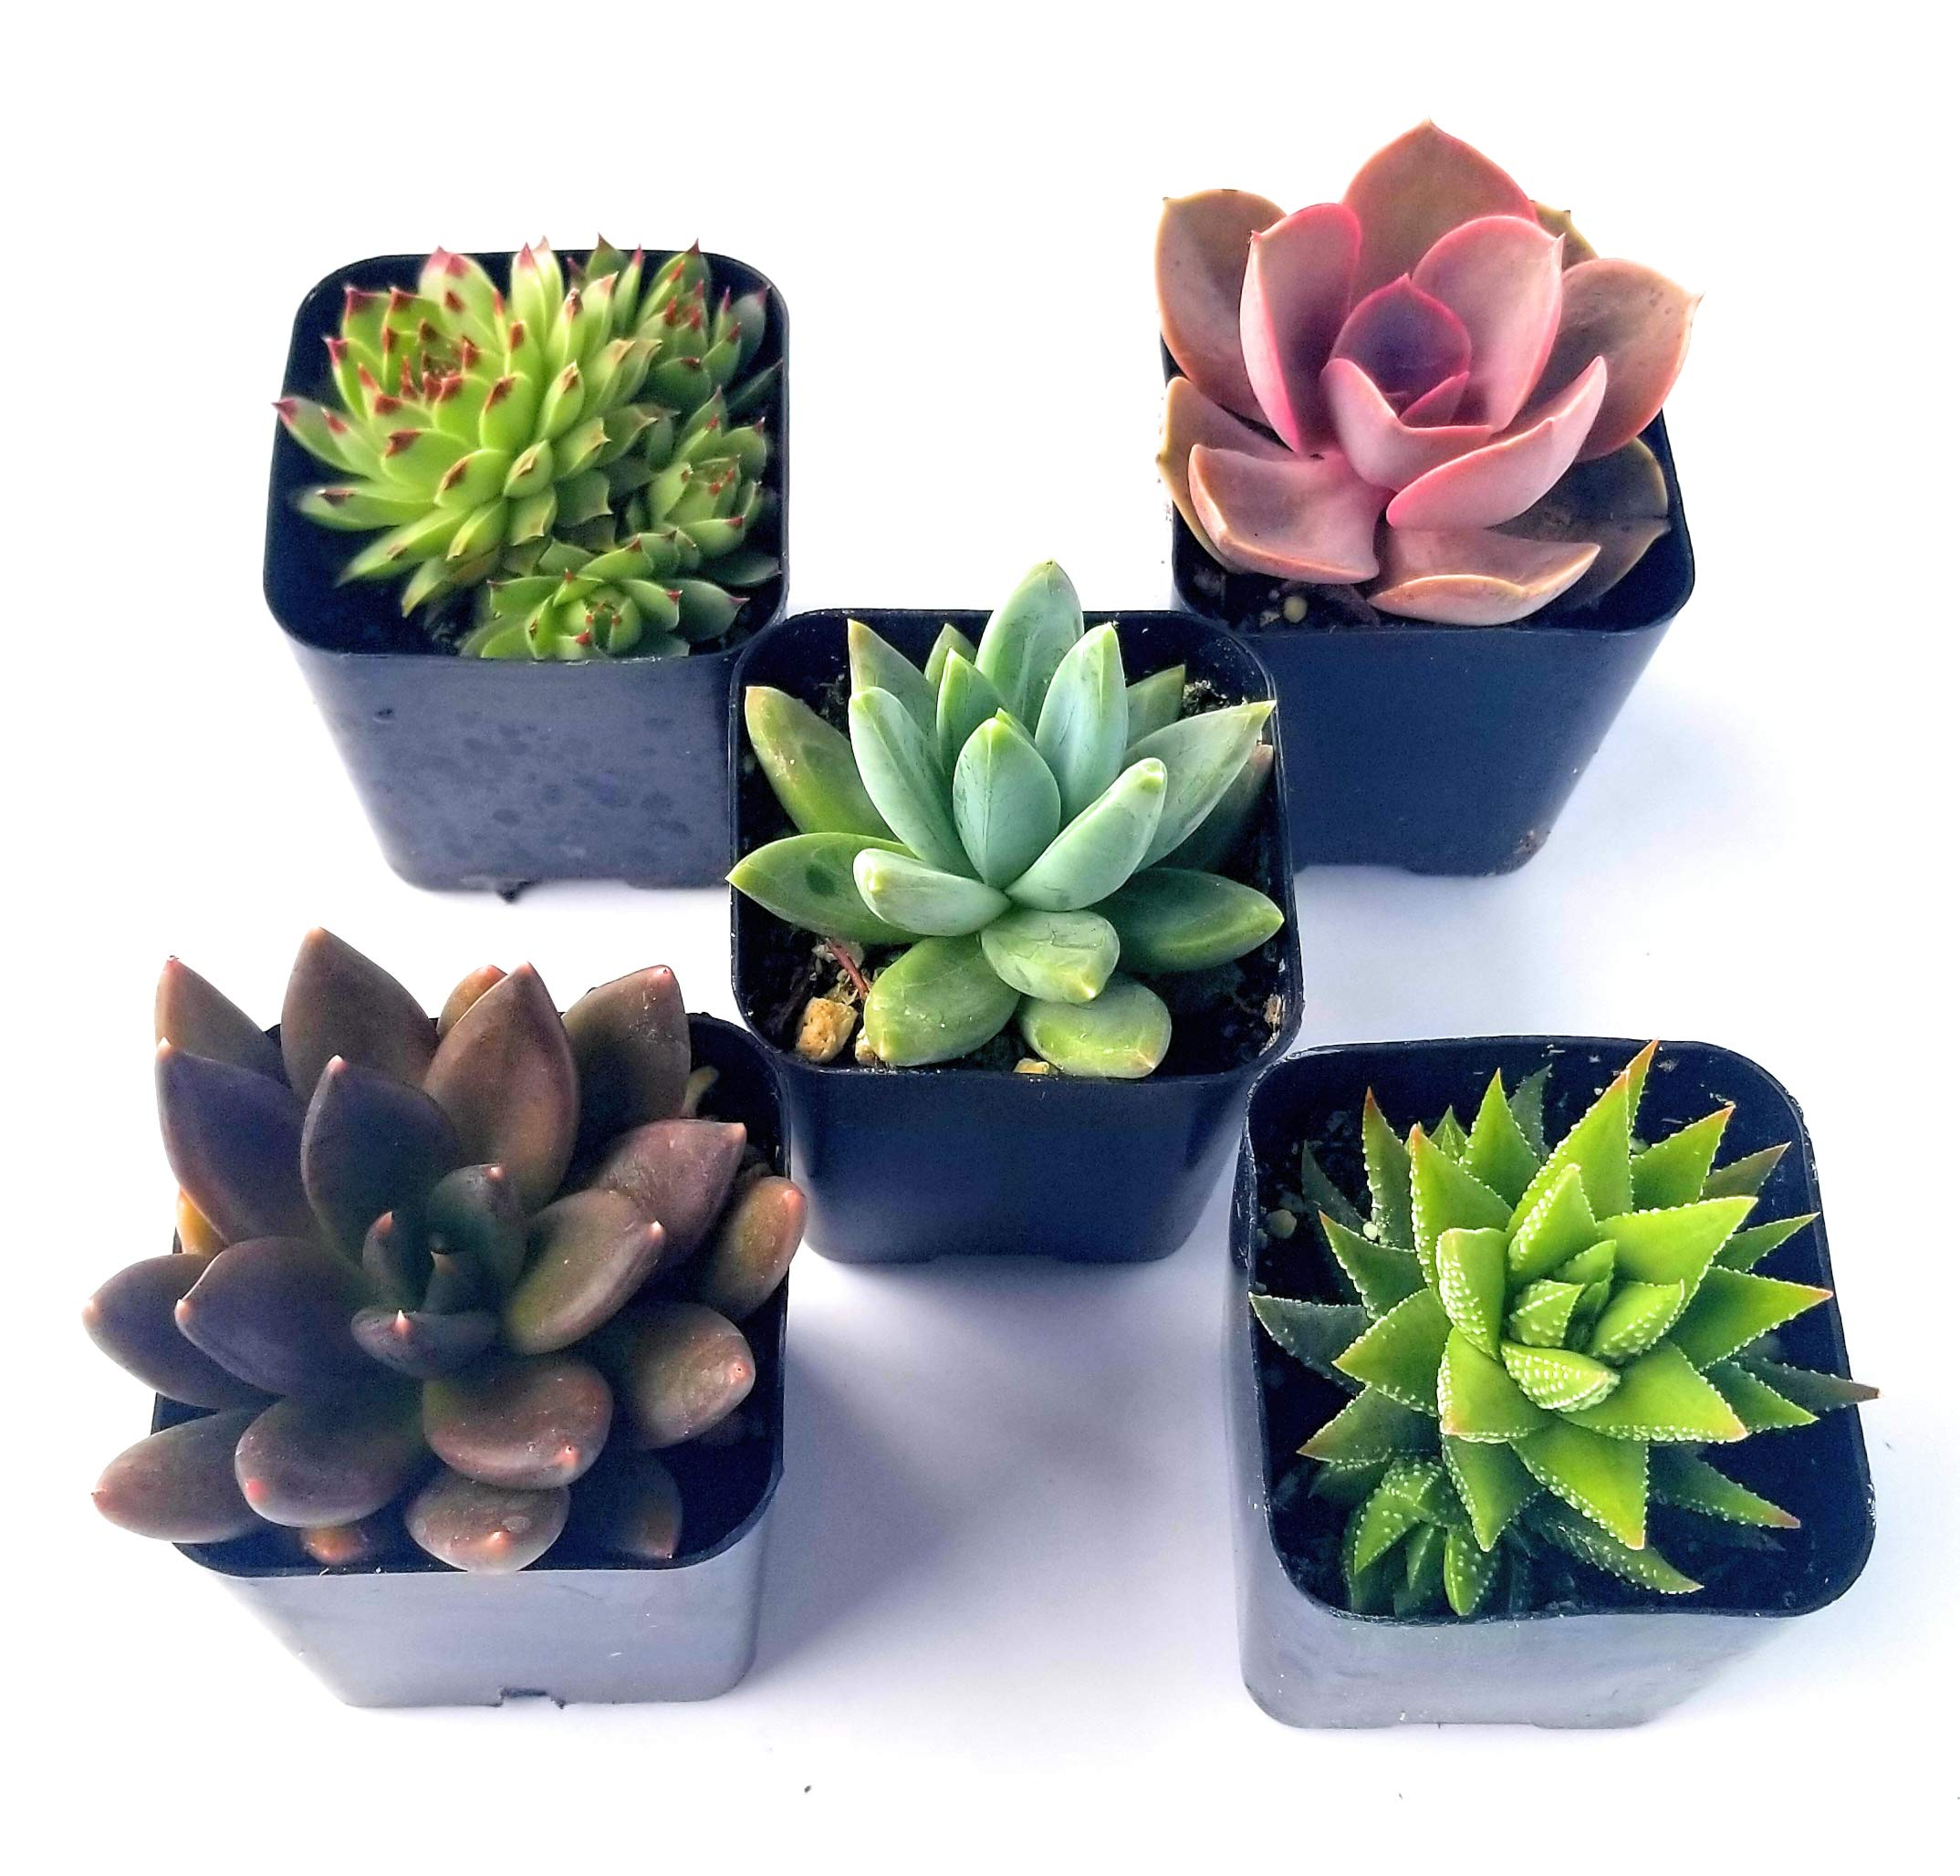 Fat Plants San Diego Miniature Living Succulent Plants in Plastic Planter Pots with Soil by Fat Plants San Diego